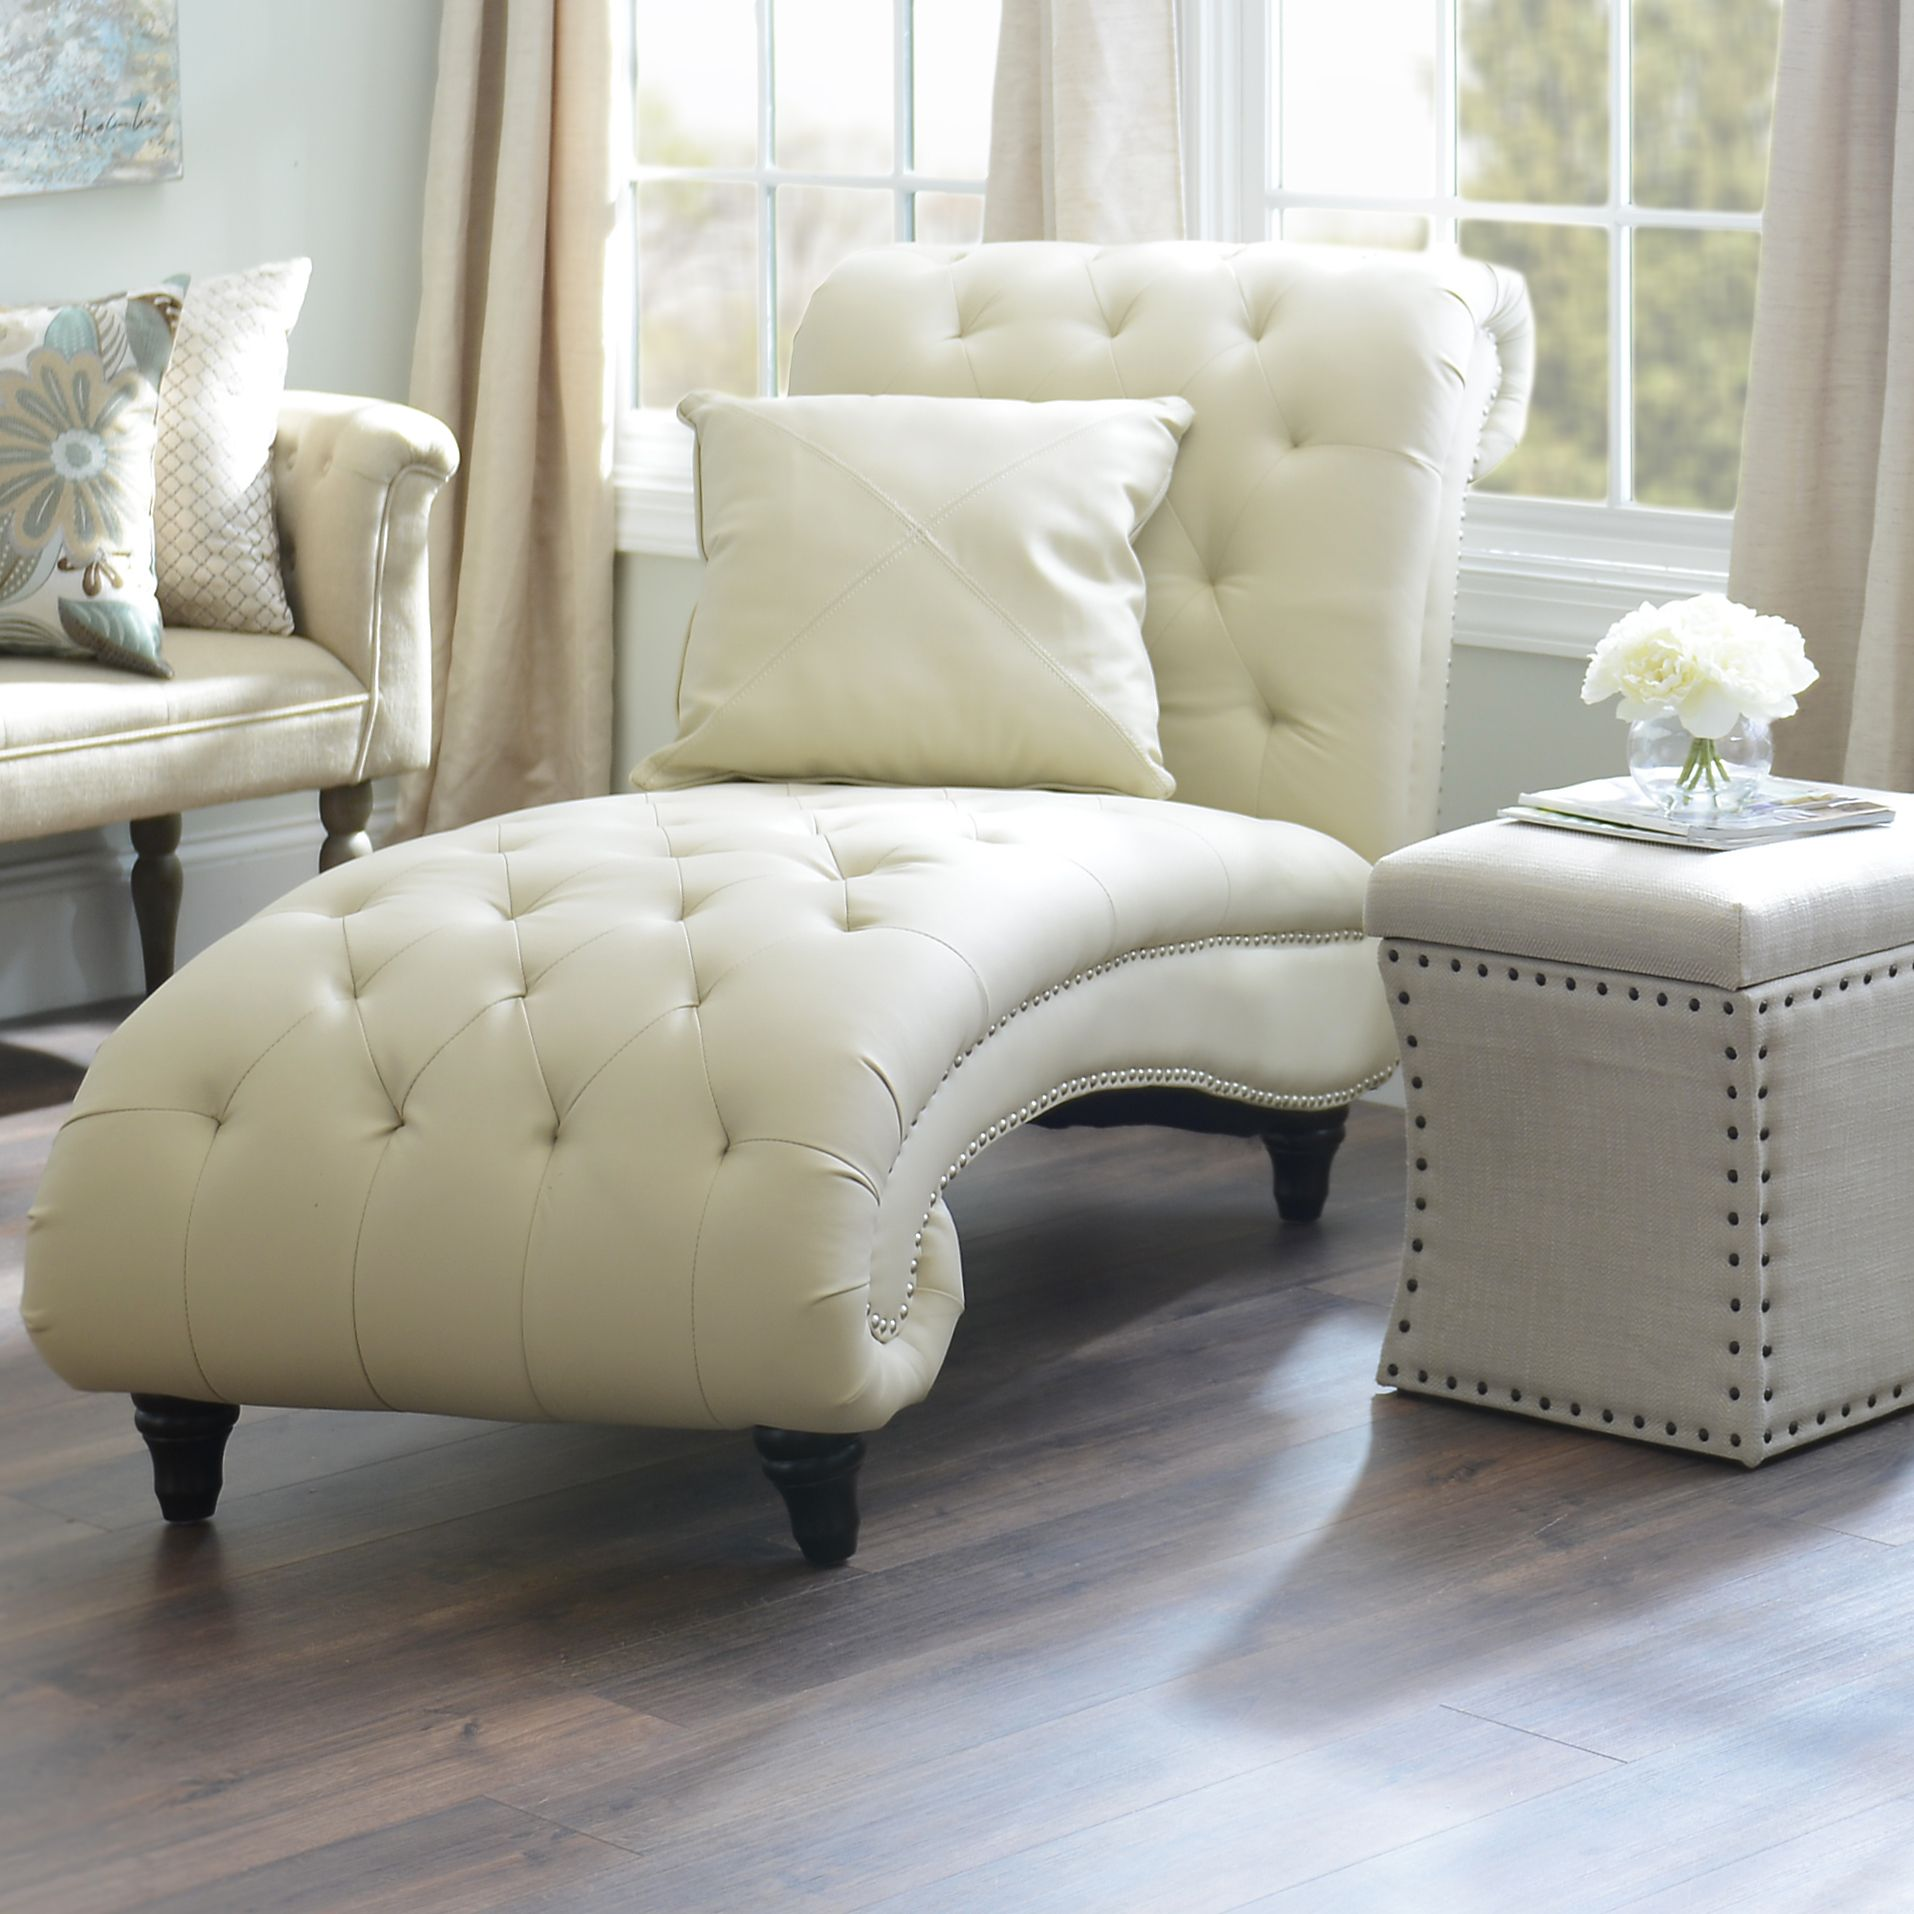 Furniture Store Kirkland: From Side Tables To Stylish Chairs, Kirkland's Has All The